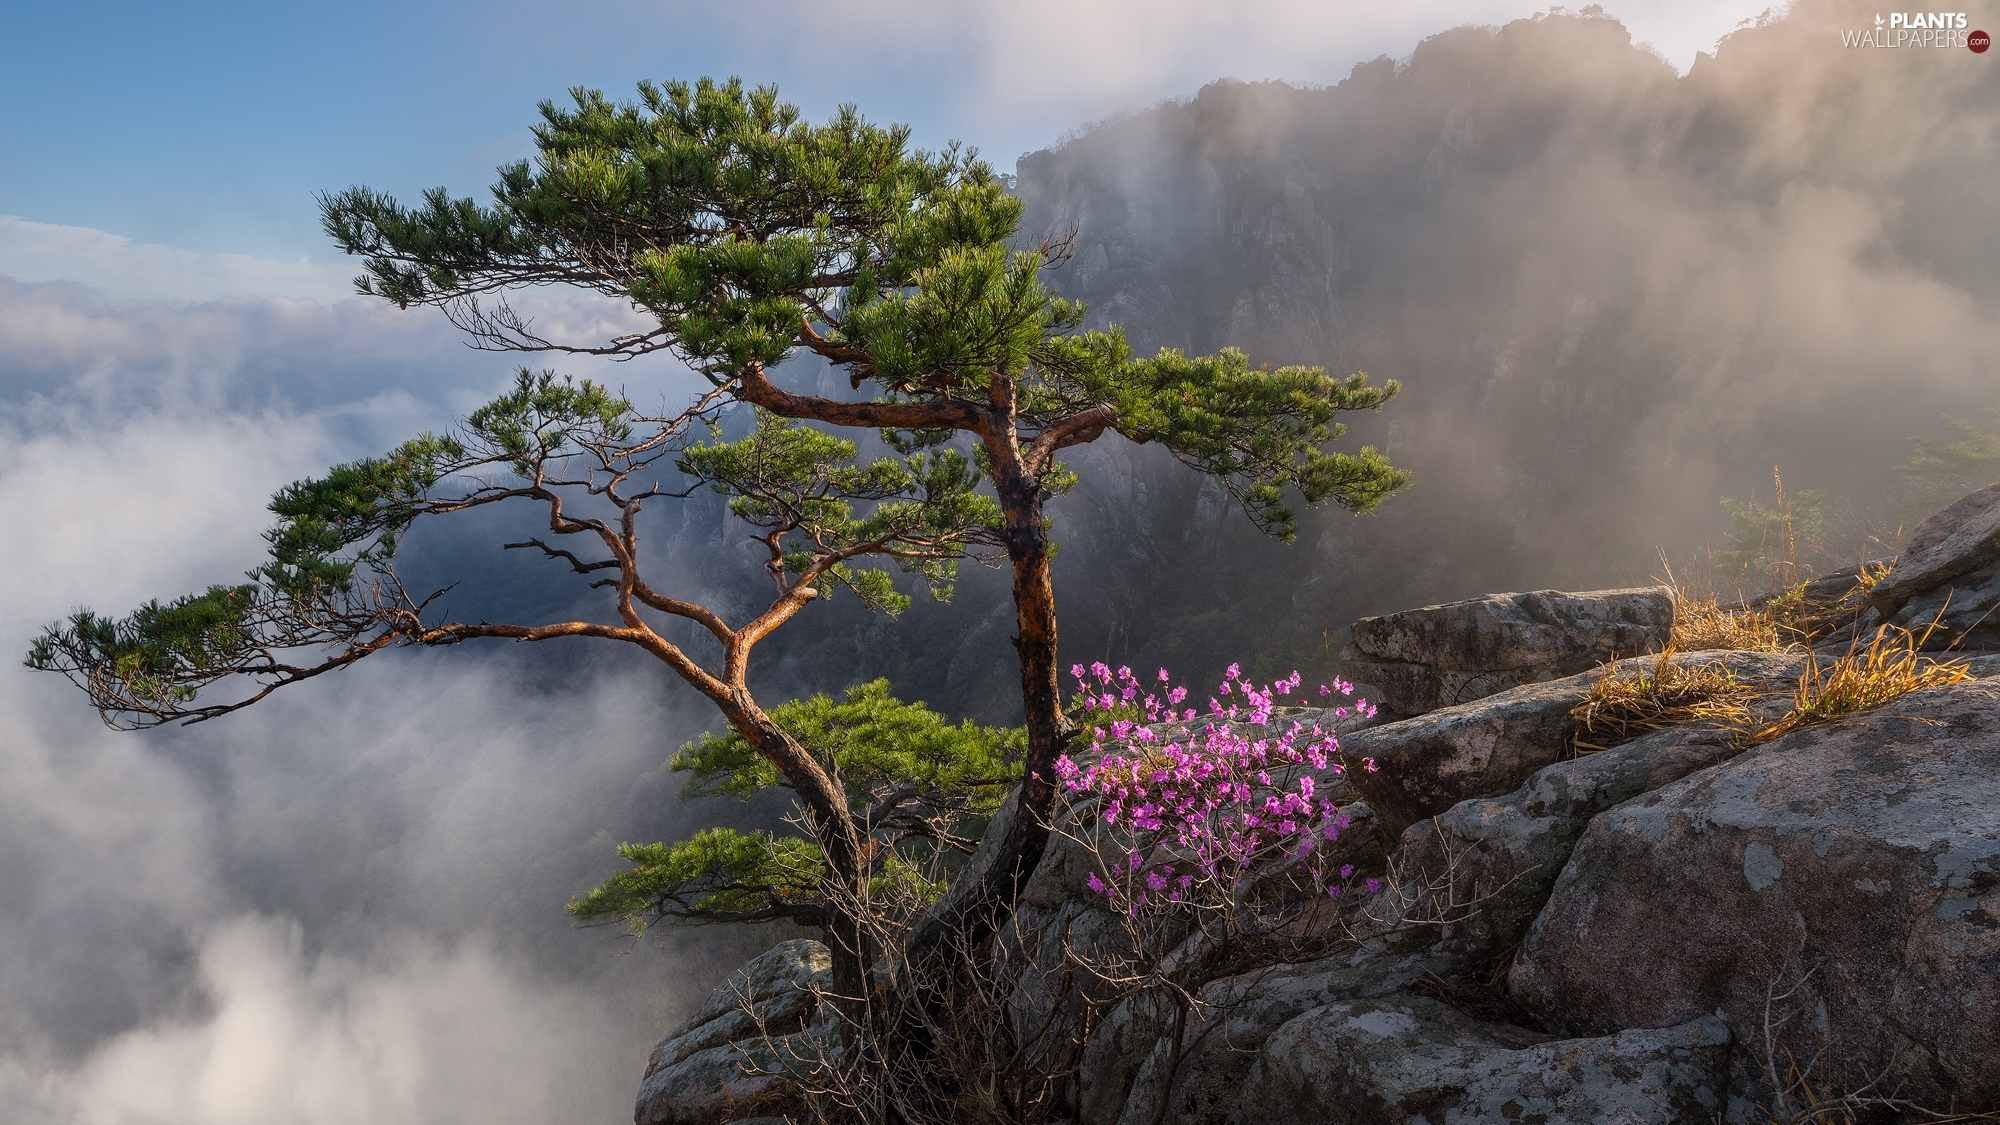 Fog, rocks, Floral, Bush, Mountains, South Korea, trees, pine, Flowers